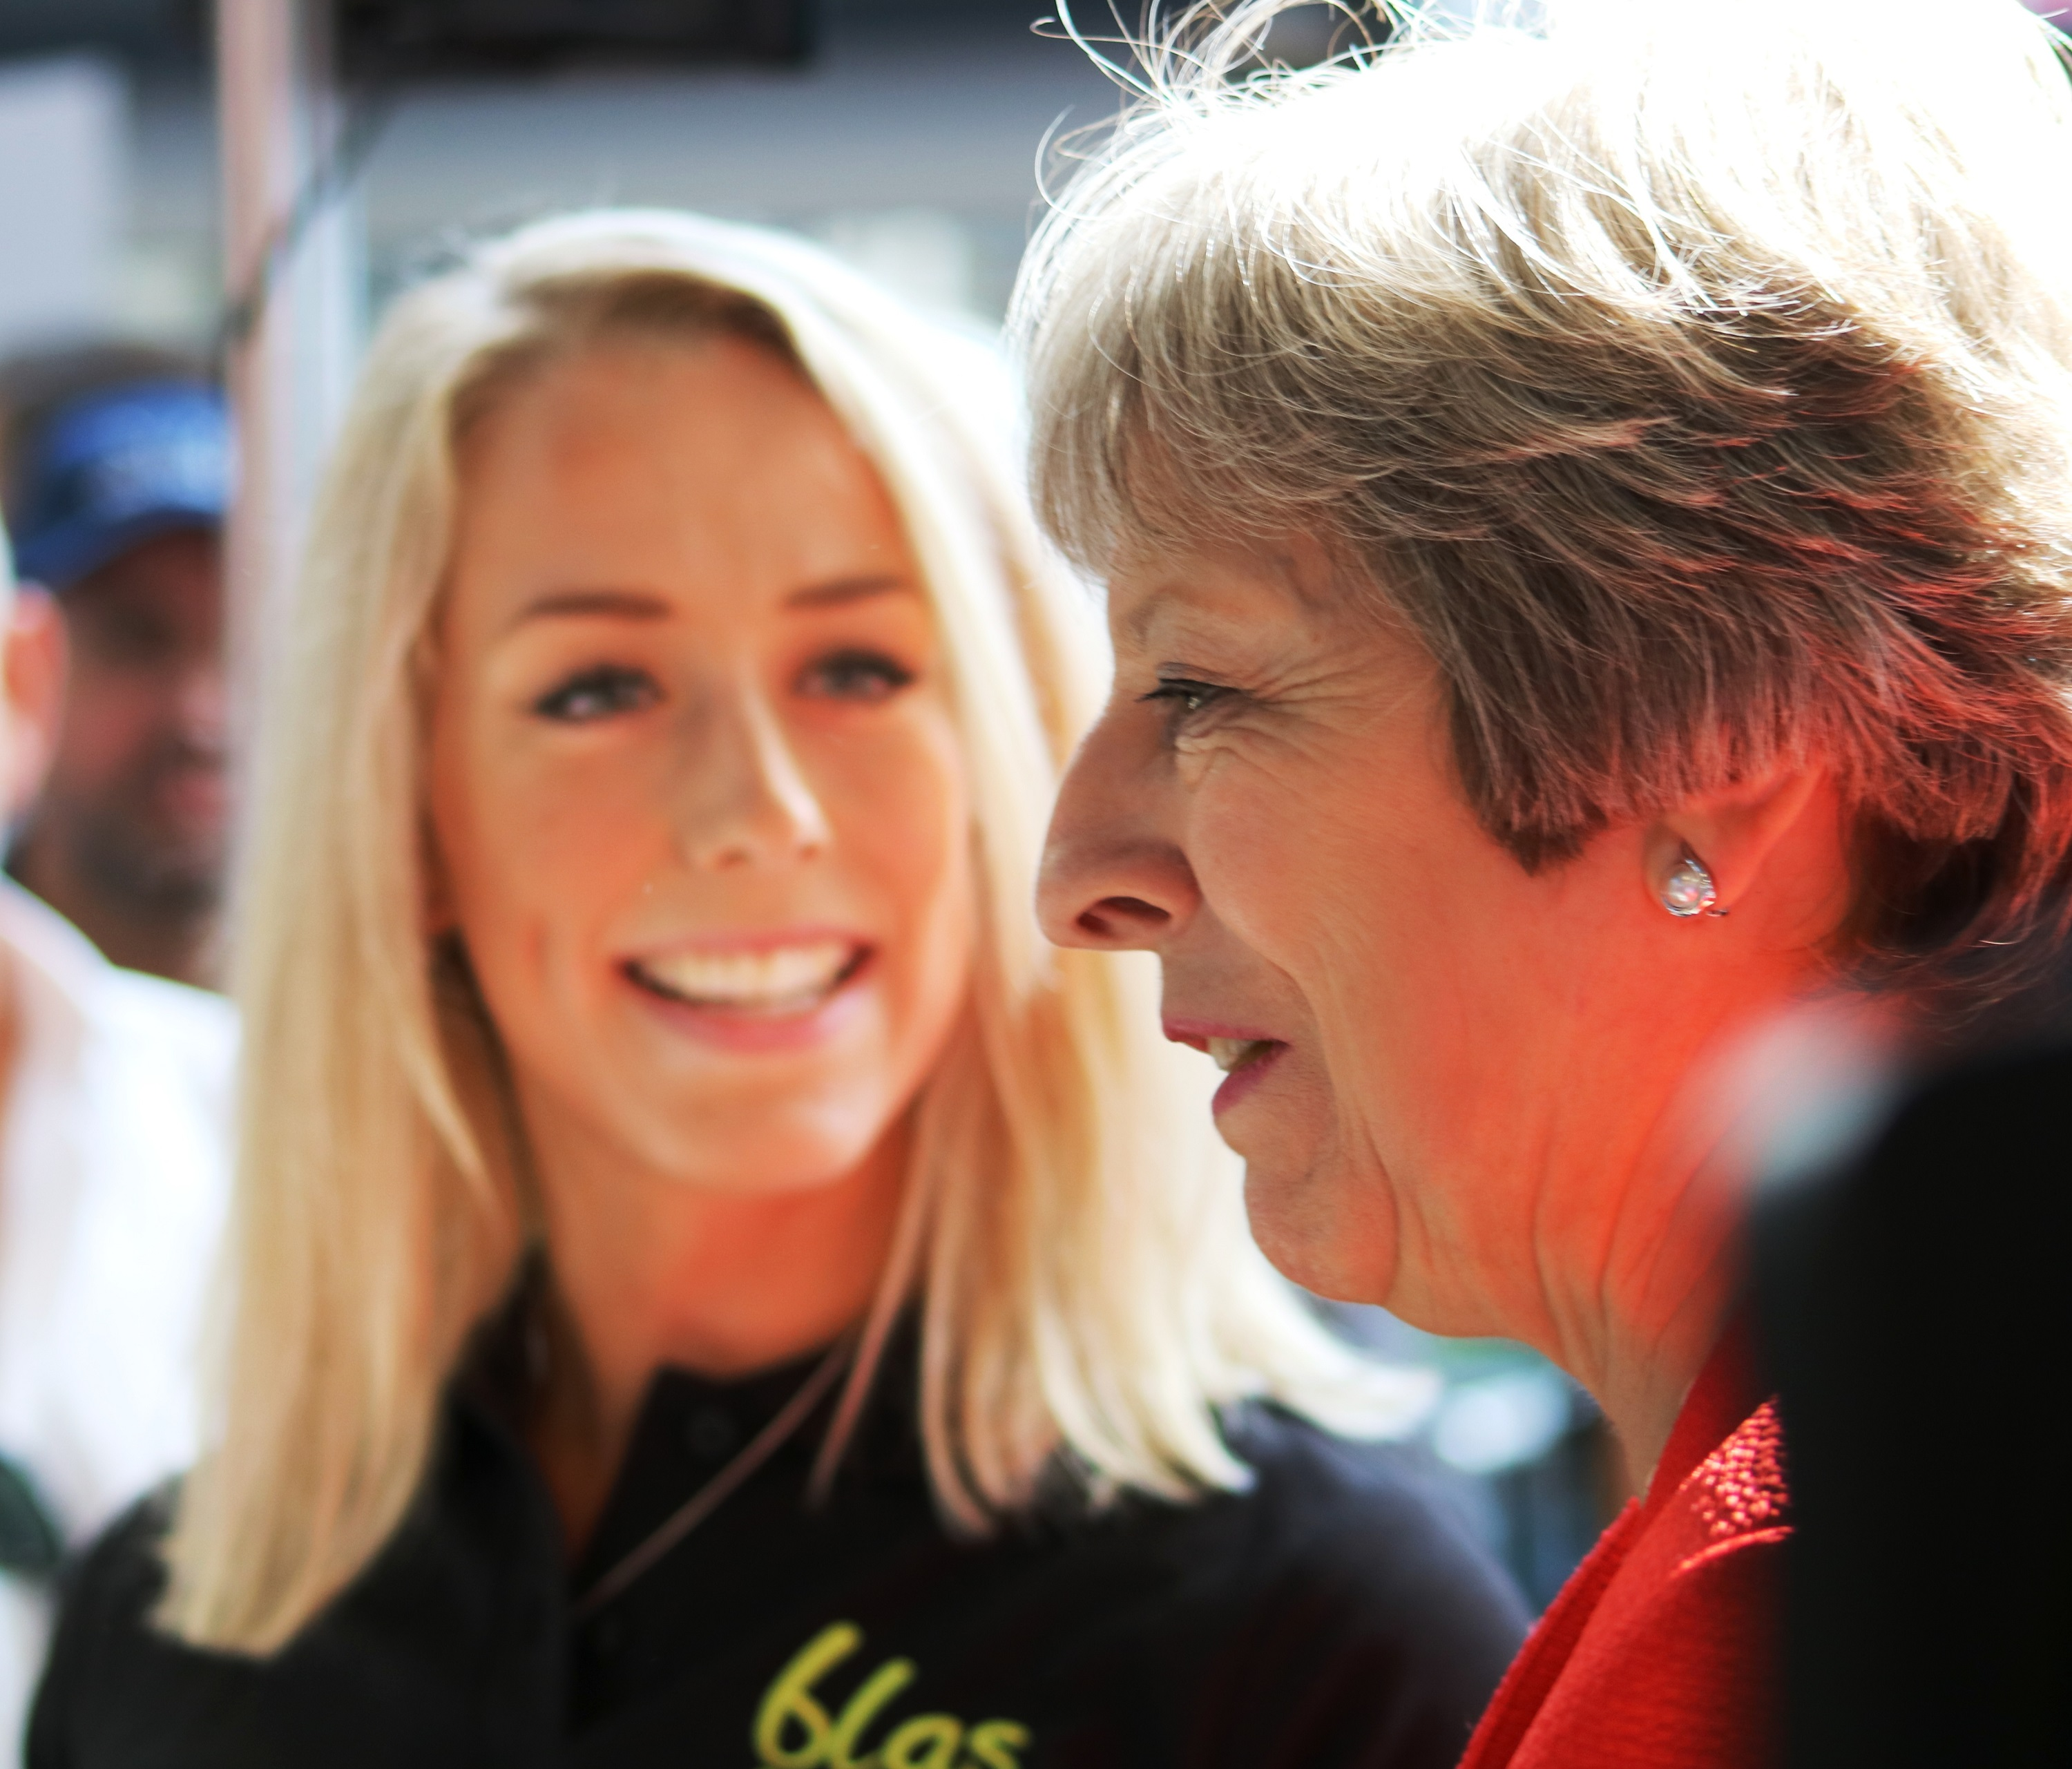 Marketing Manager Megan with Prime Minister Theresa May at the Royal Welsh Show 2018